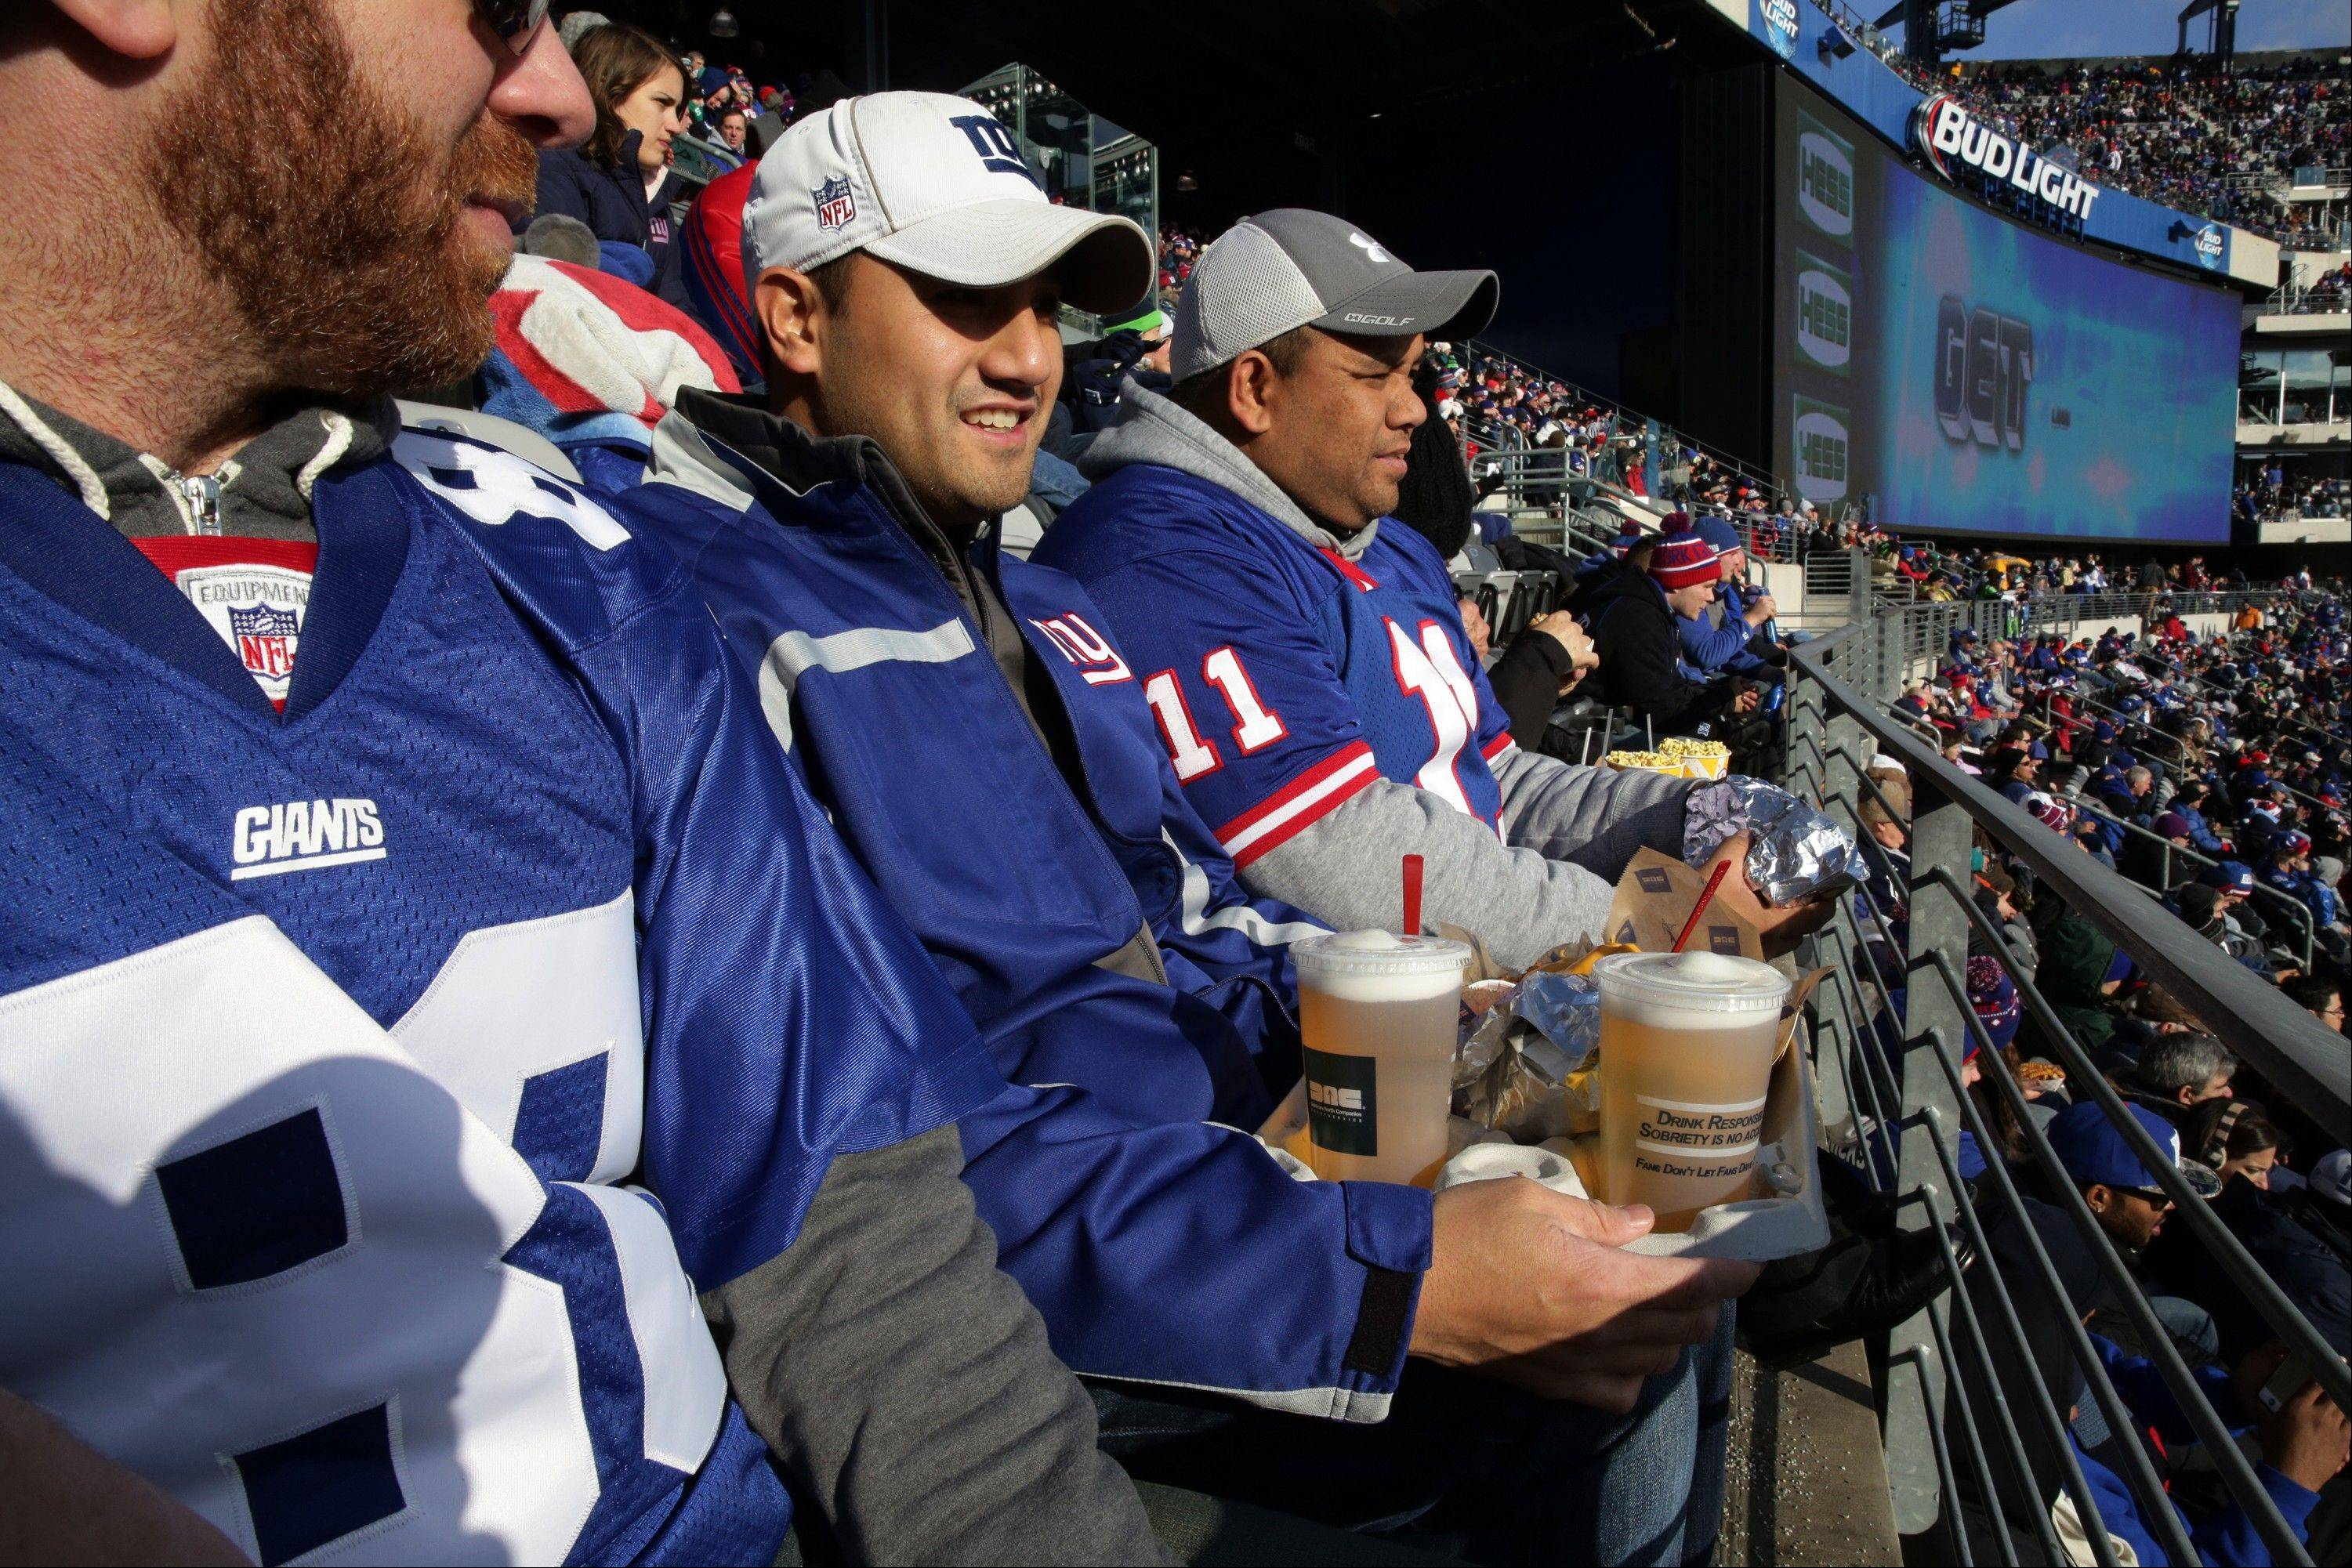 Of course, there will be beer and other beverages on tap at MetLife Stadium during the Super Bowl.